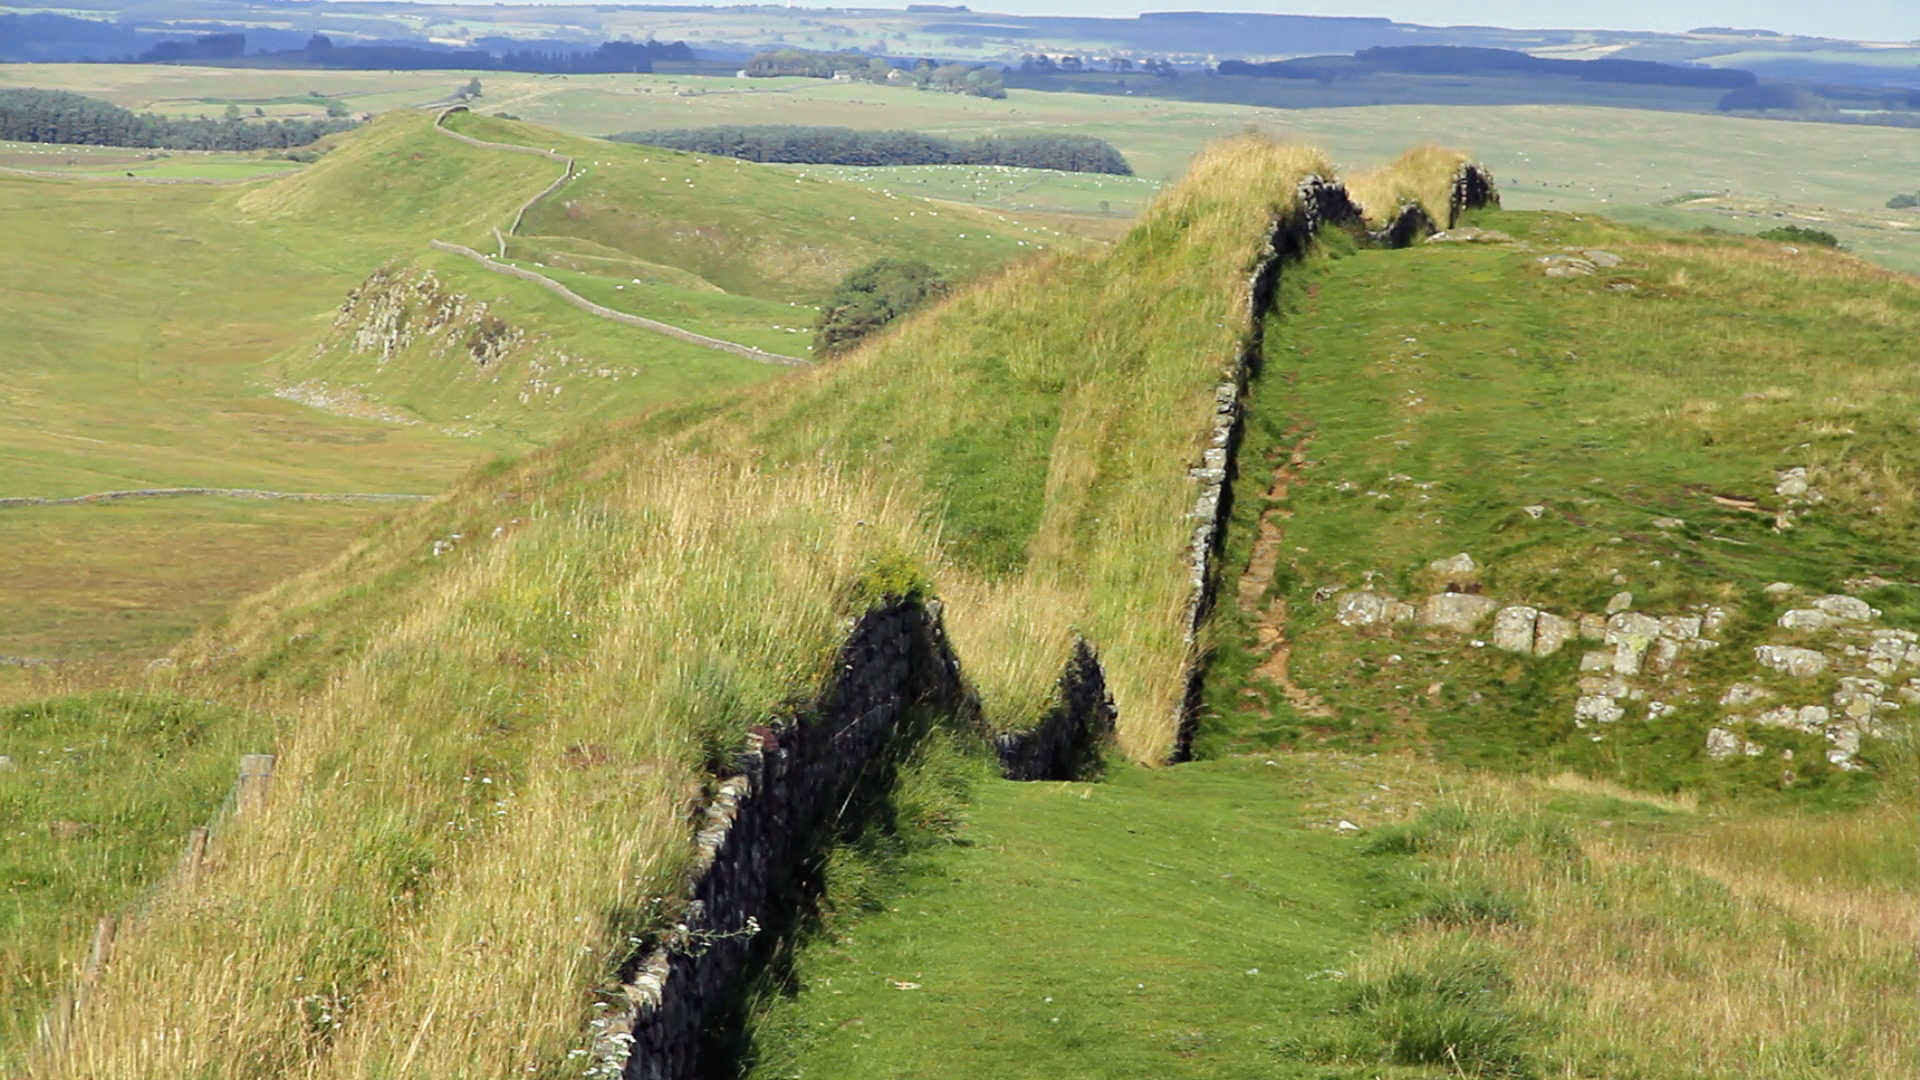 North England: Hadrian's Wall